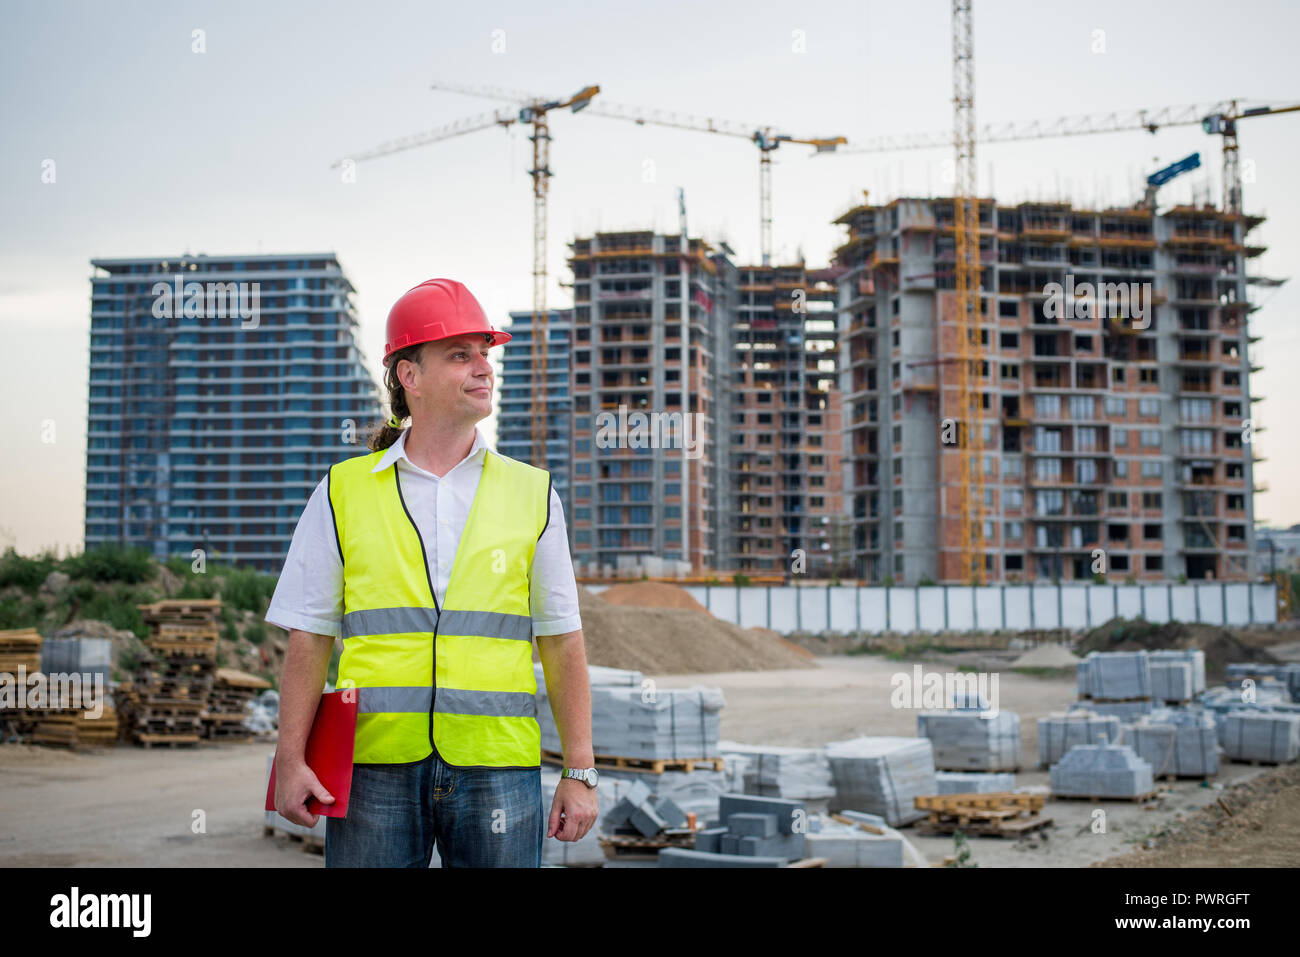 Engineer on a construction site working on housing project - Stock Image